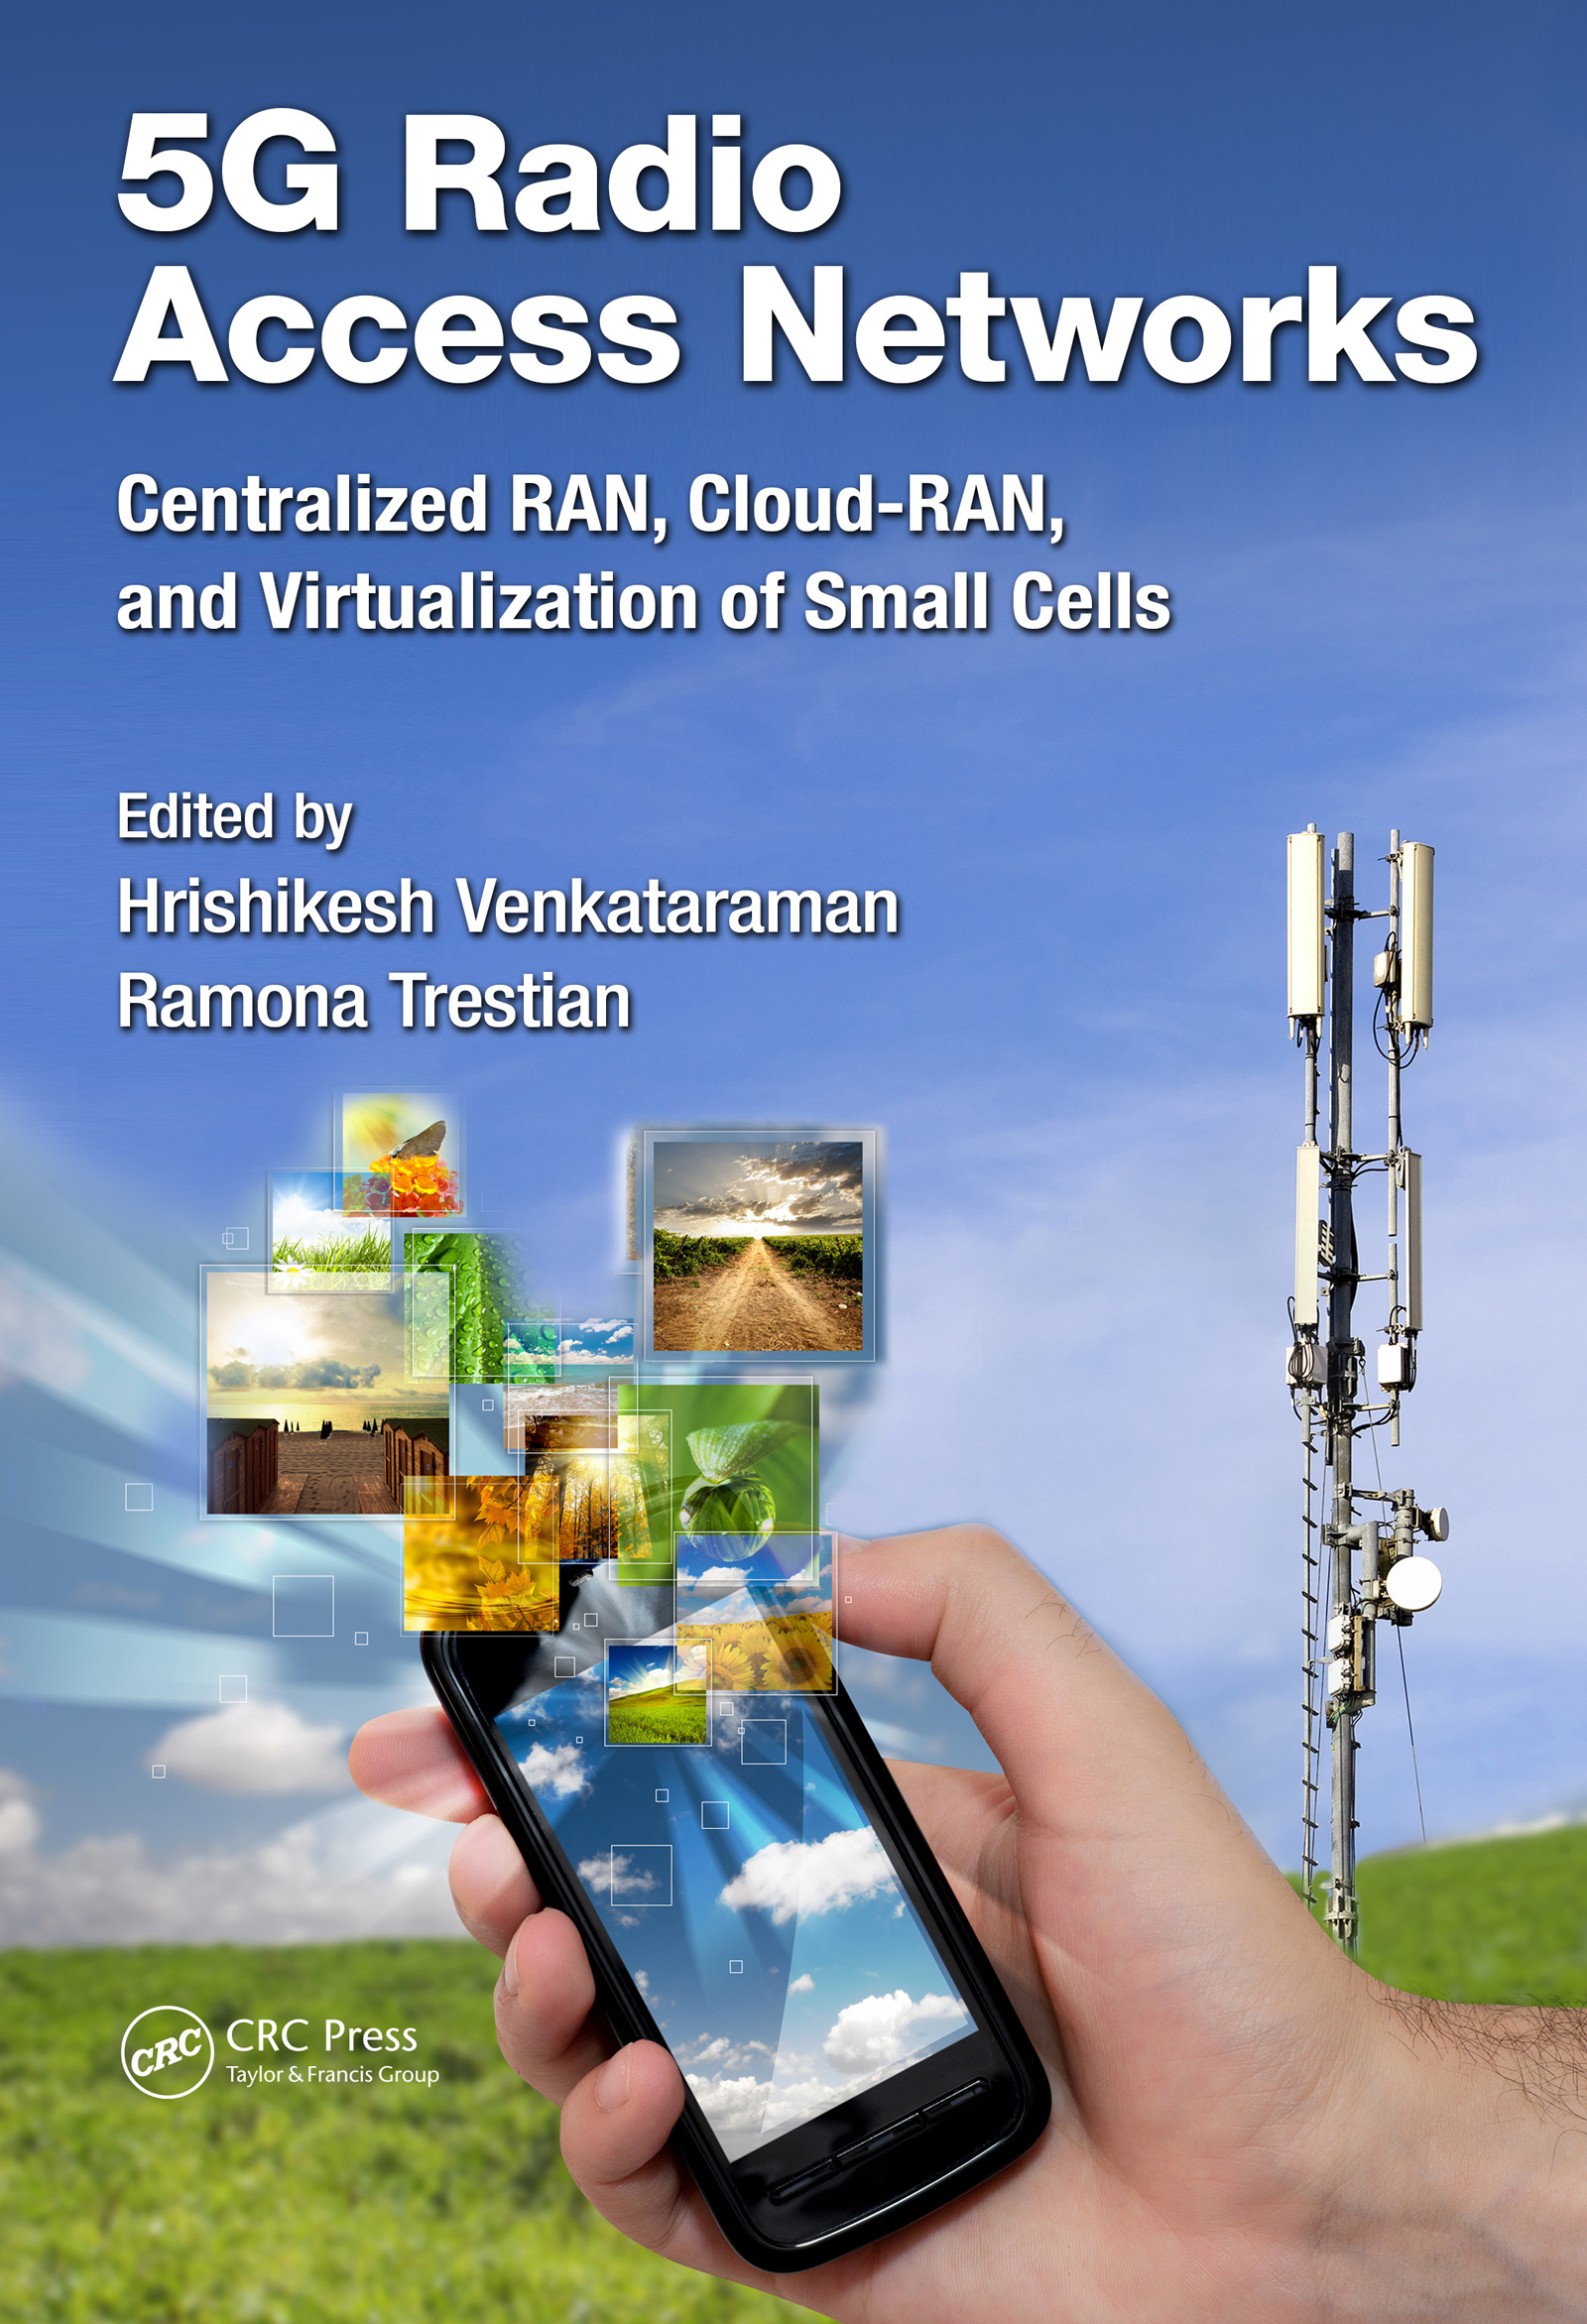 5G Radio Access Networks: Centralized RAN, Cloud-RAN, and Virtualization of Small Cells